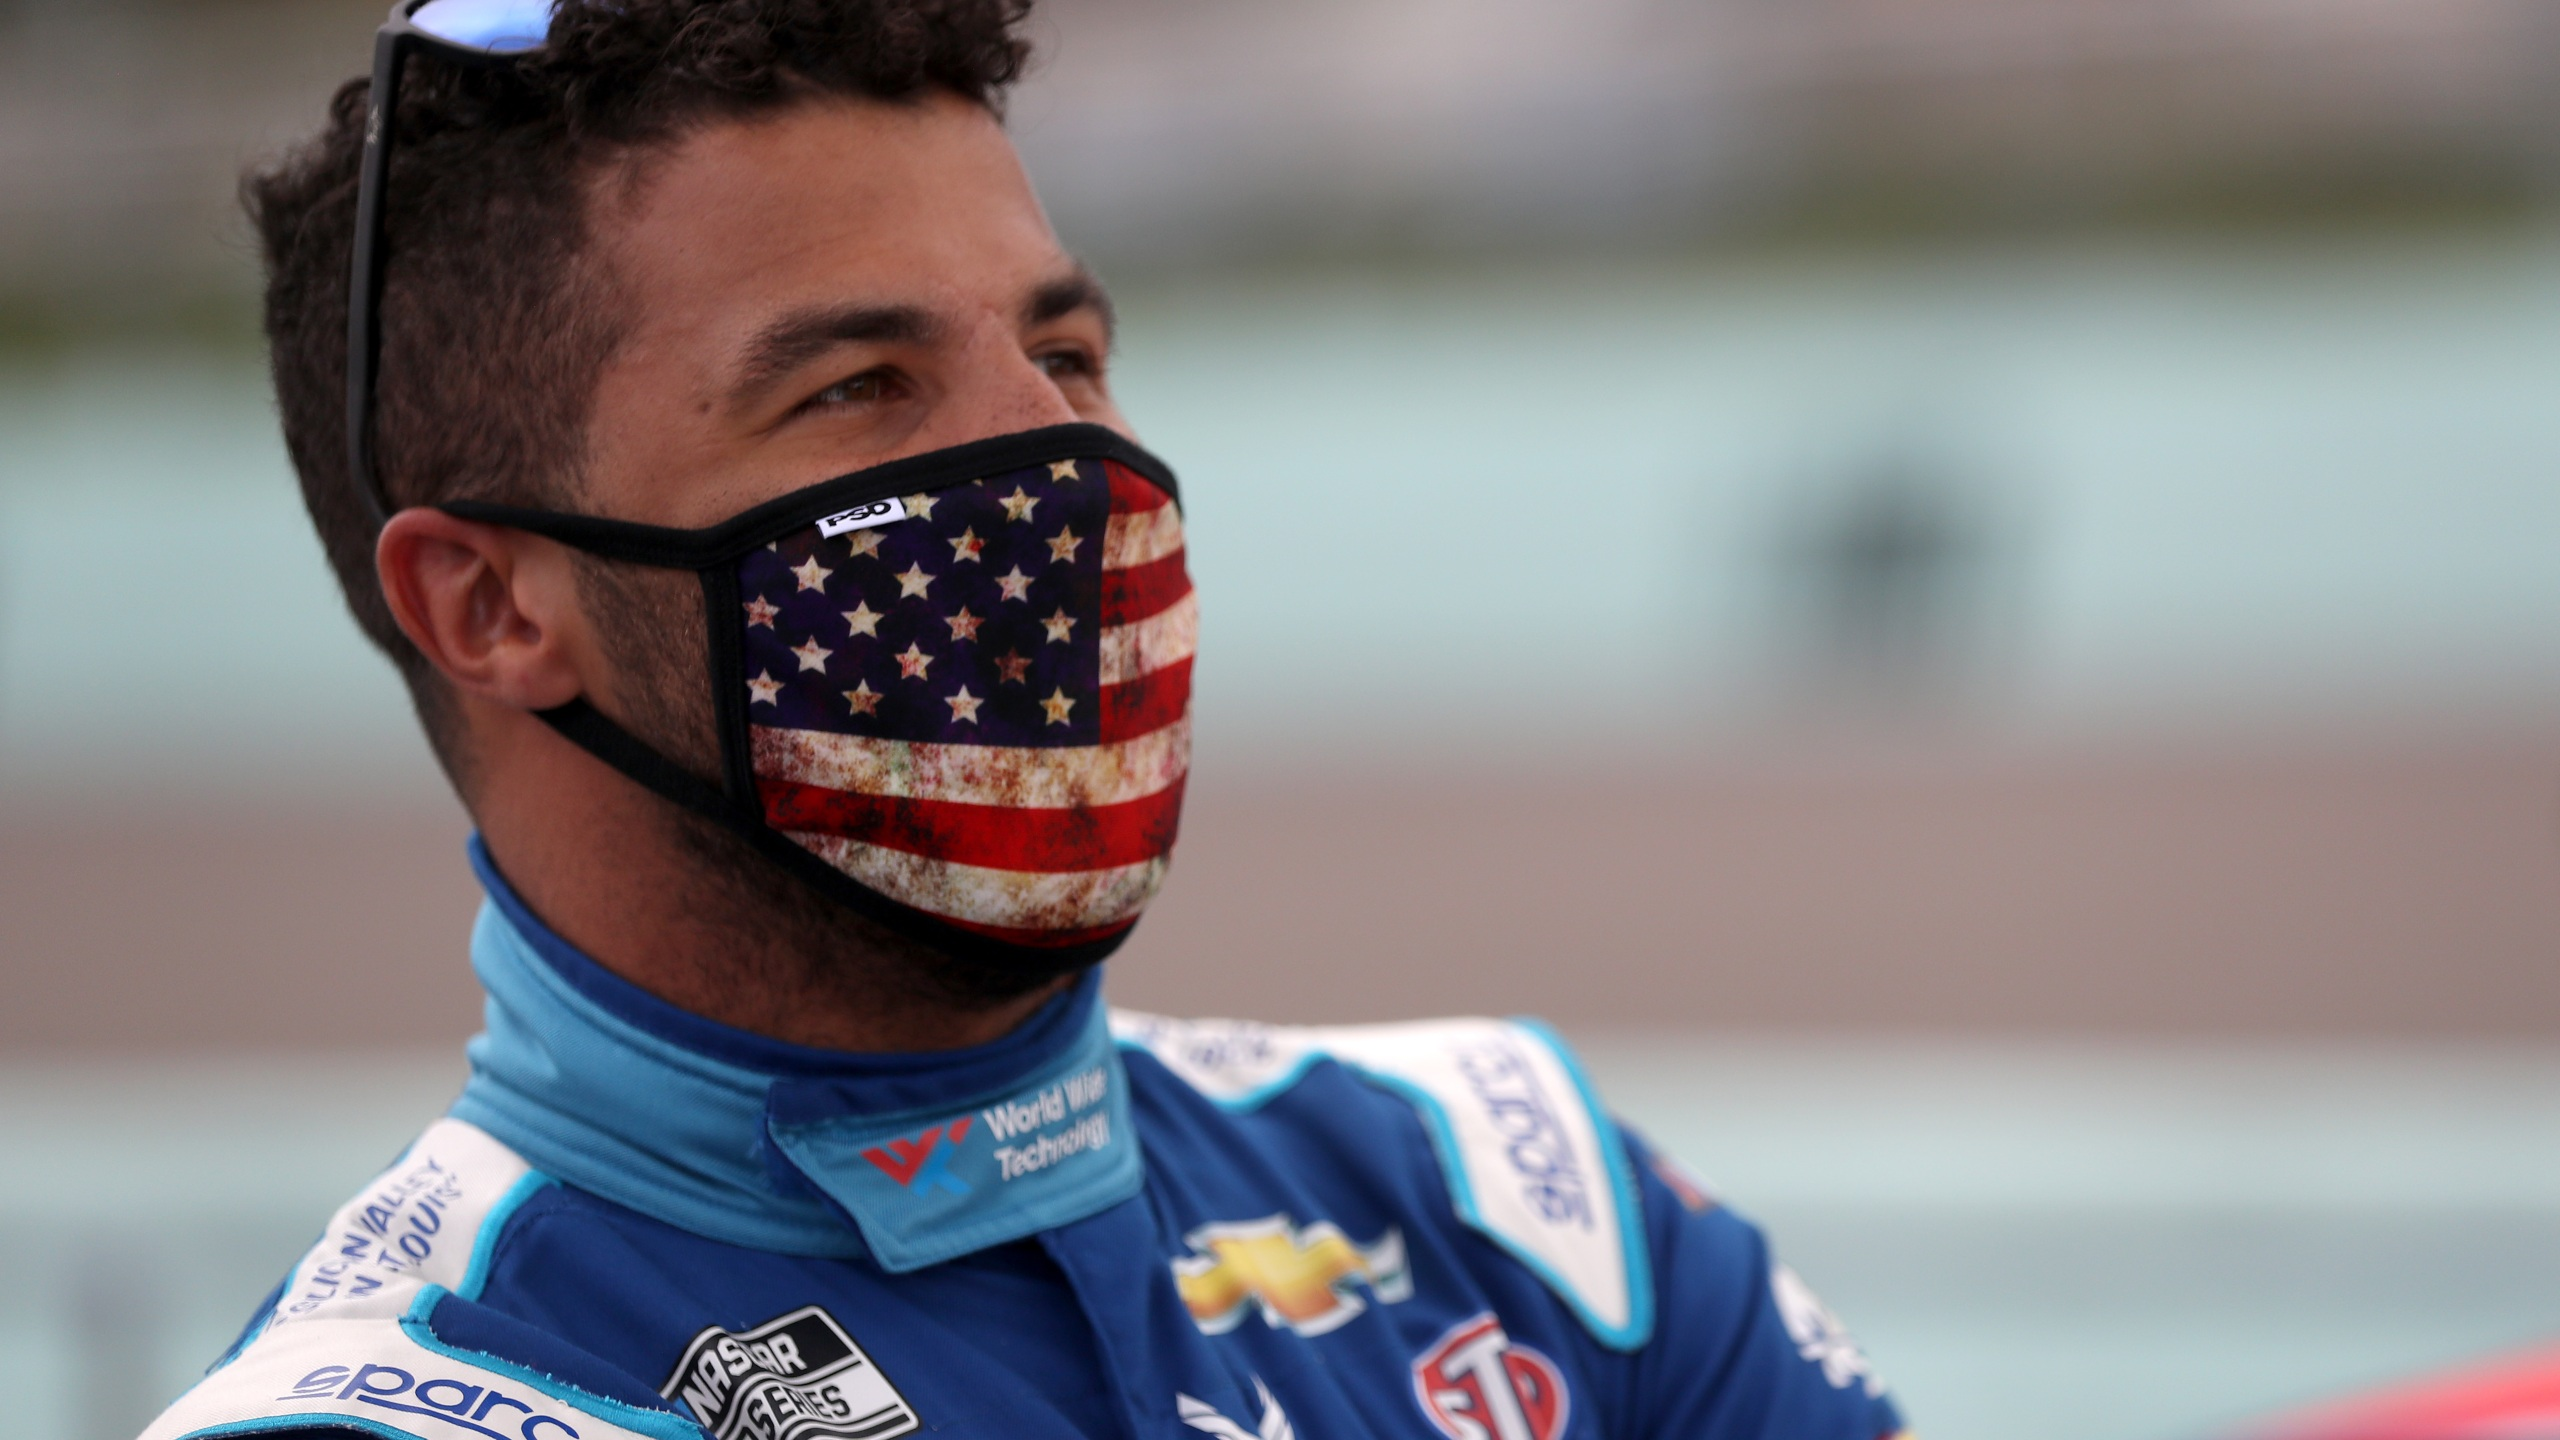 Bubba Wallace, driver of the #43 World Wide Technology Chevrolet, stands on the grid prior to the NASCAR Cup Series Dixie Vodka 400 at Homestead-Miami Speedway on June 14, 2020 ,in Homestead, Florida. (Chris Graythen/Getty Images)